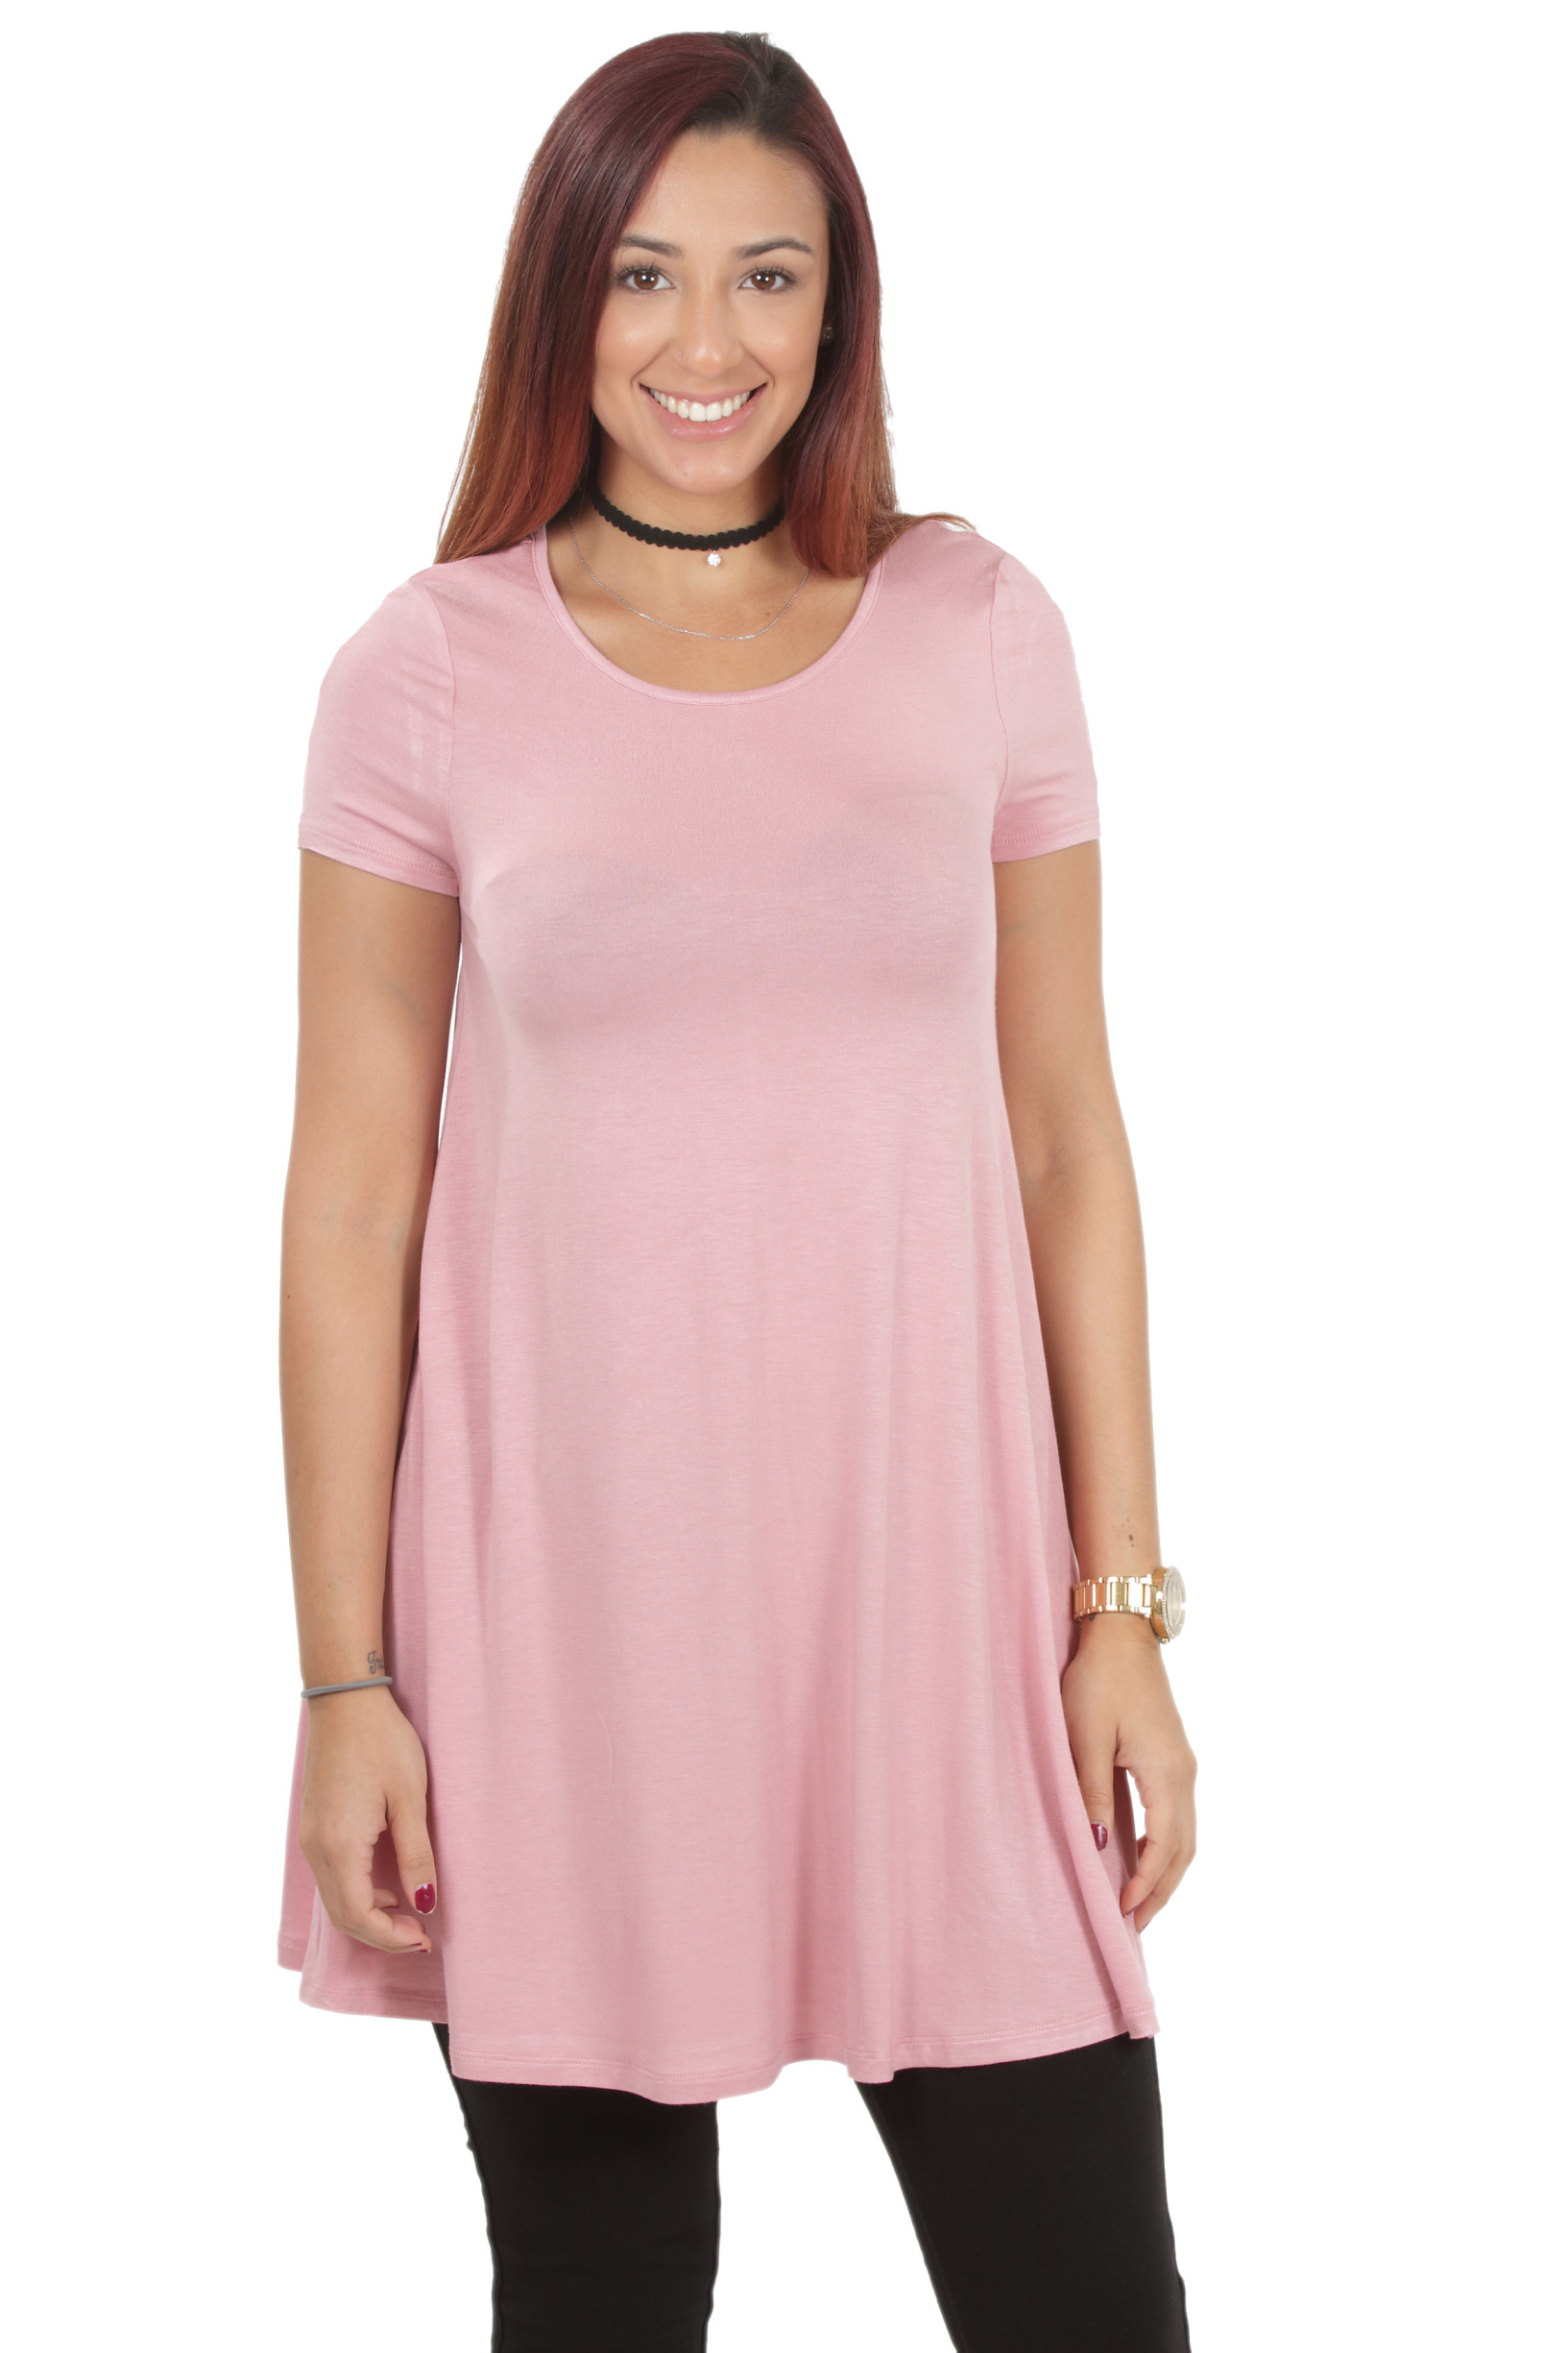 RS1043-Women-039-s-Short-Sleeve-Flare-Hem-Loose-Fit-Round-Neck-Dress-Tunic-Top thumbnail 21